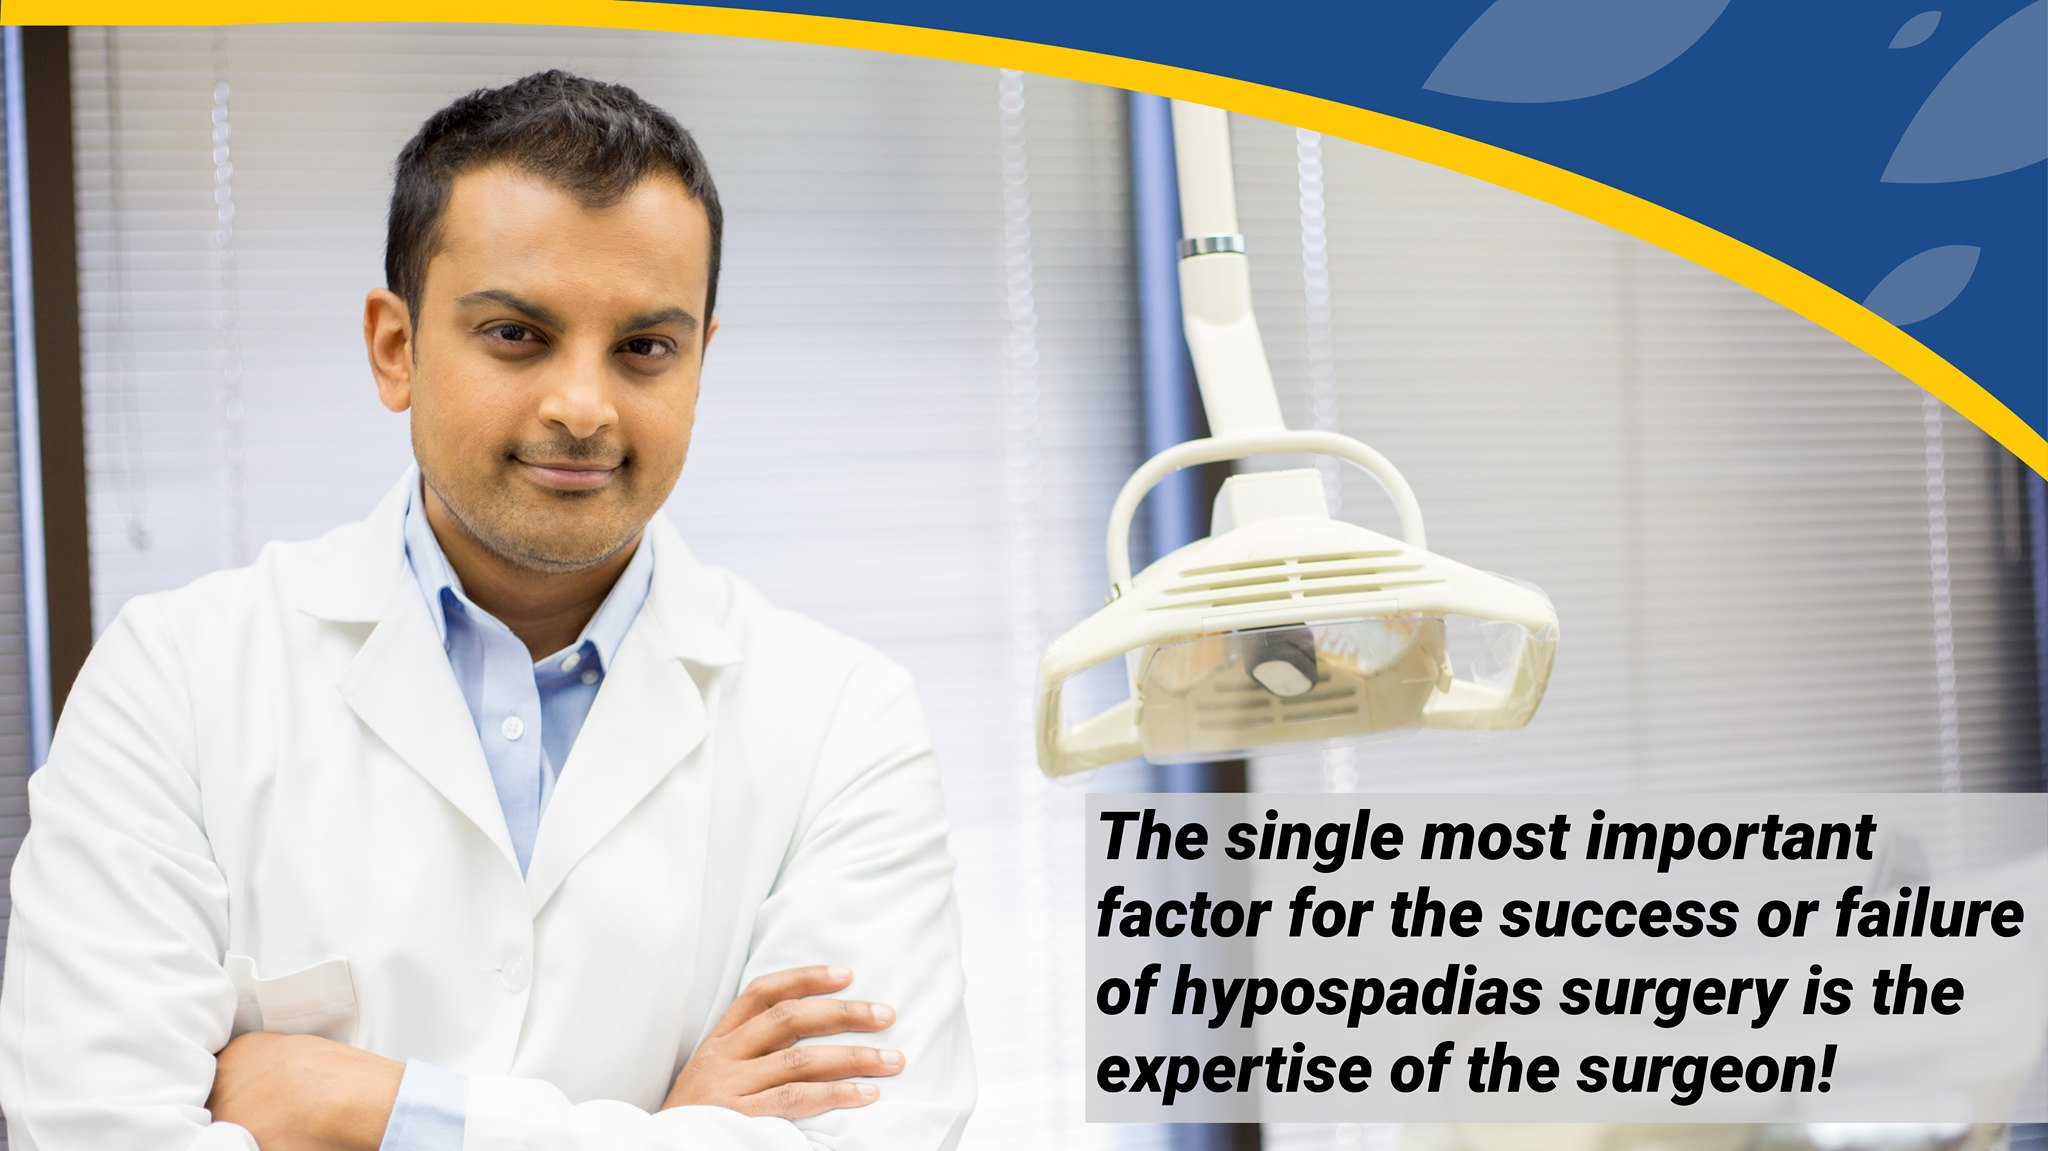 The single most important factor for the success or failure of hypospadias surgery is the expertise of the surgeon!